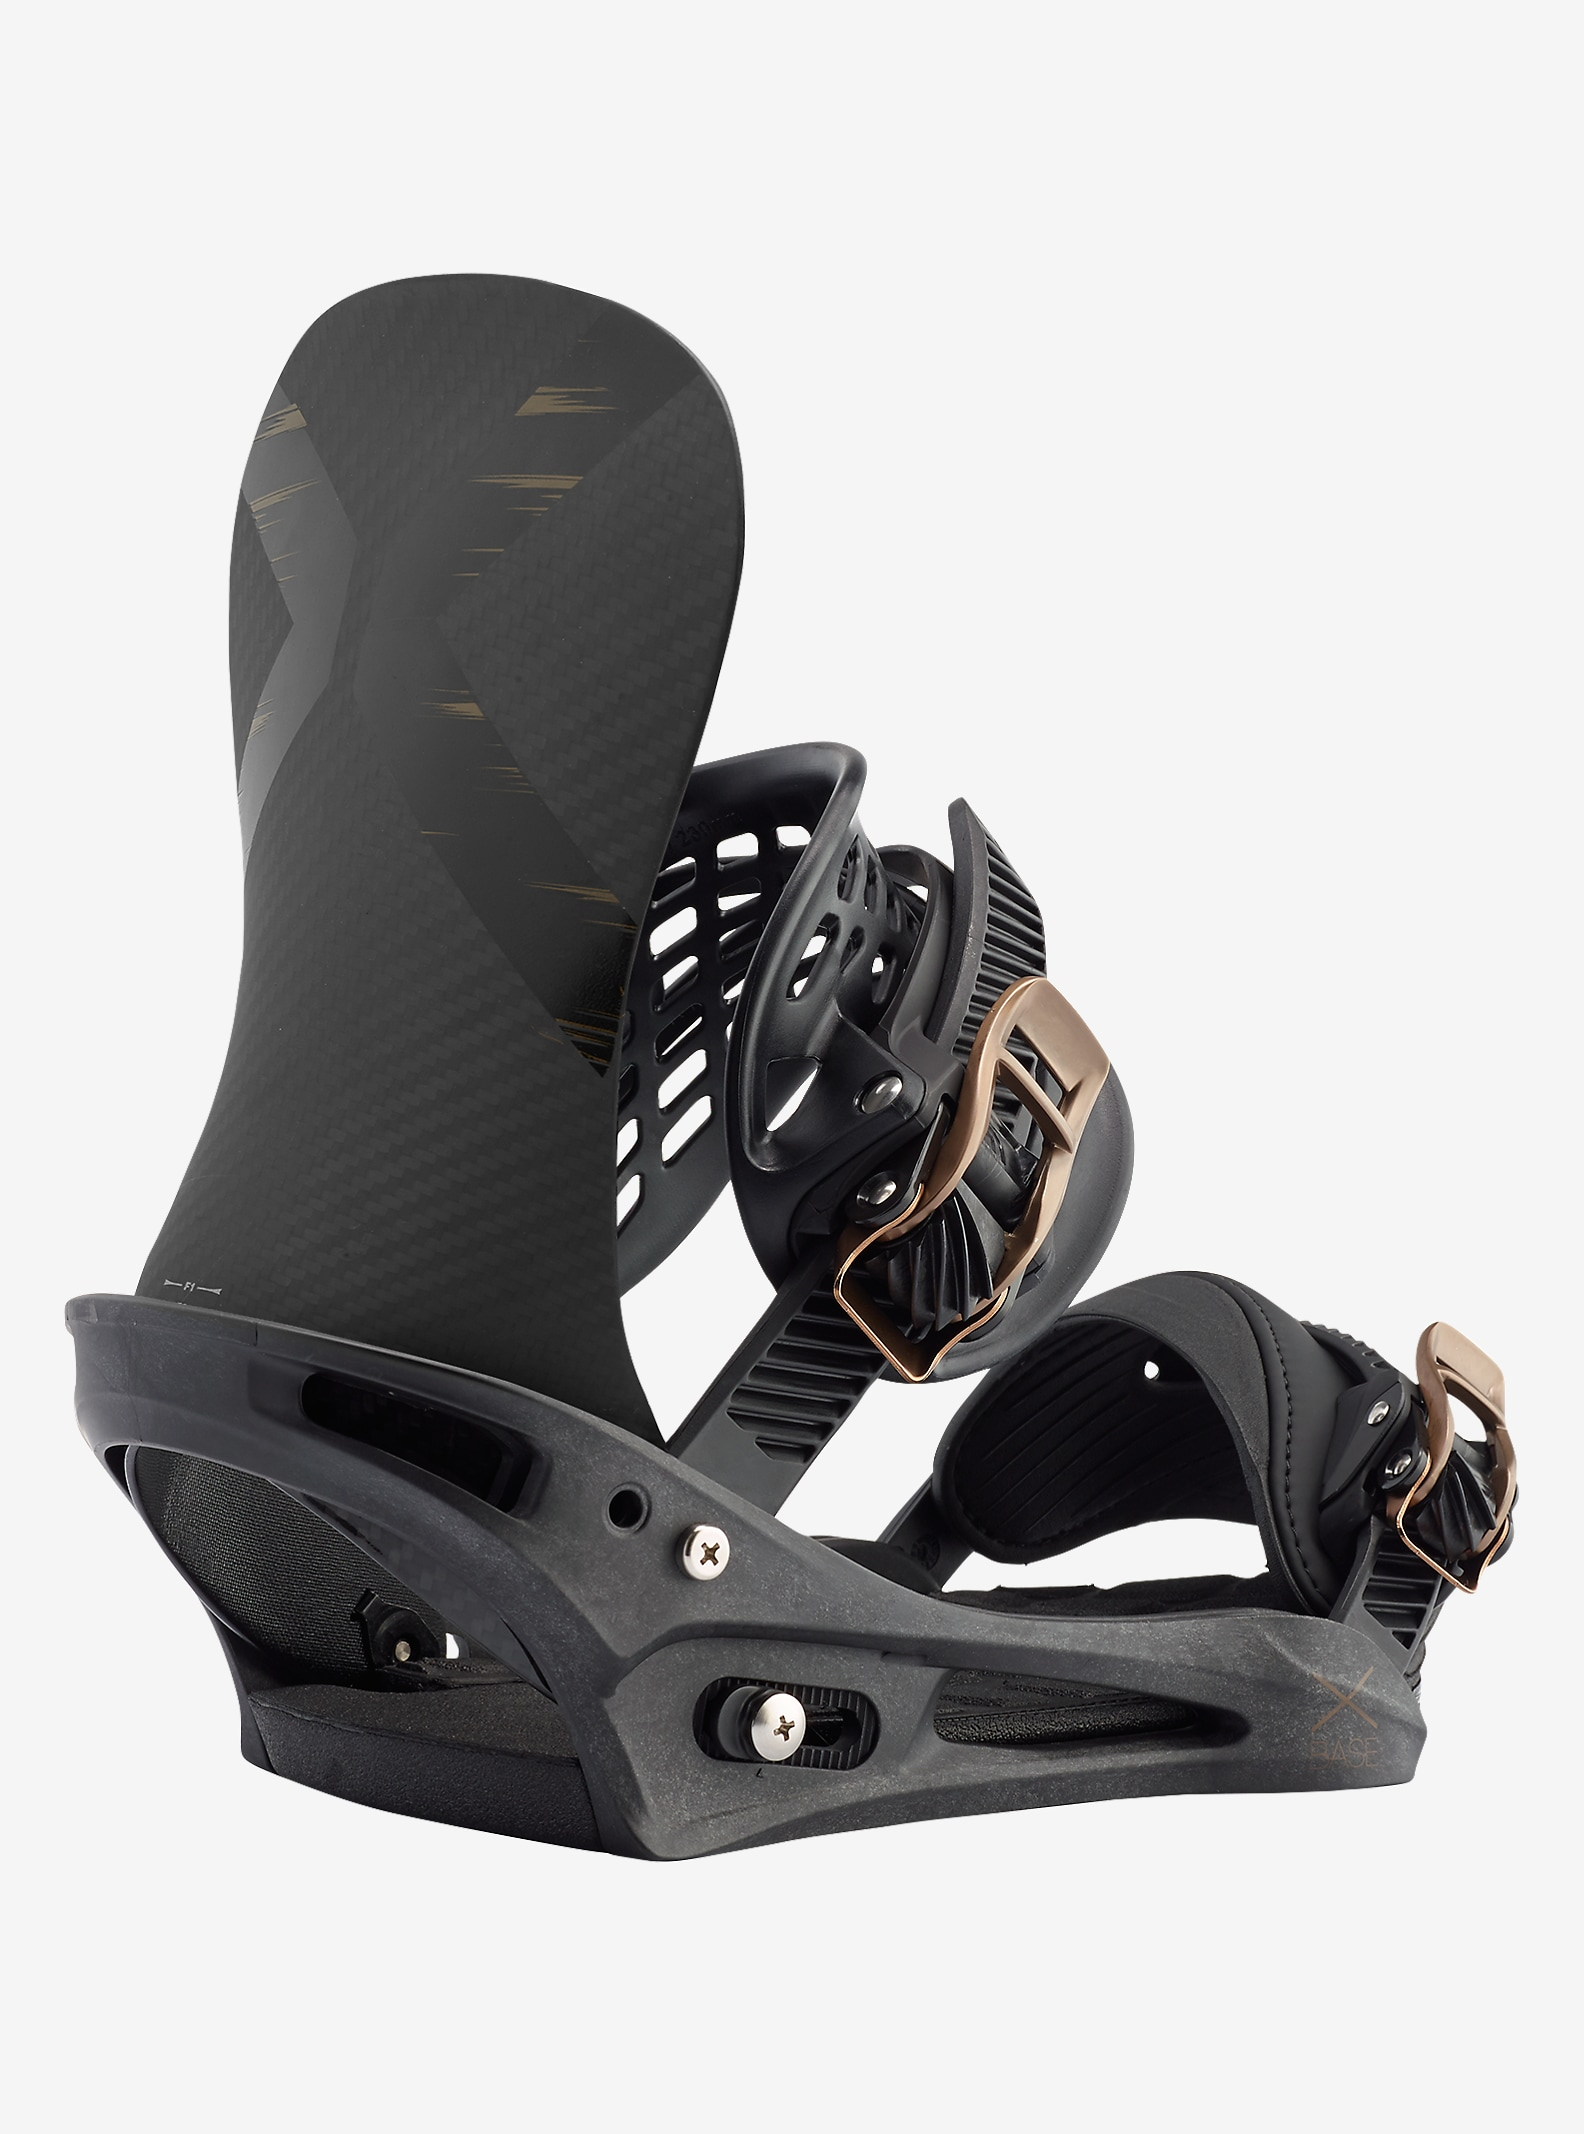 Burton X-Base Snowboard Binding shown in Black Mag